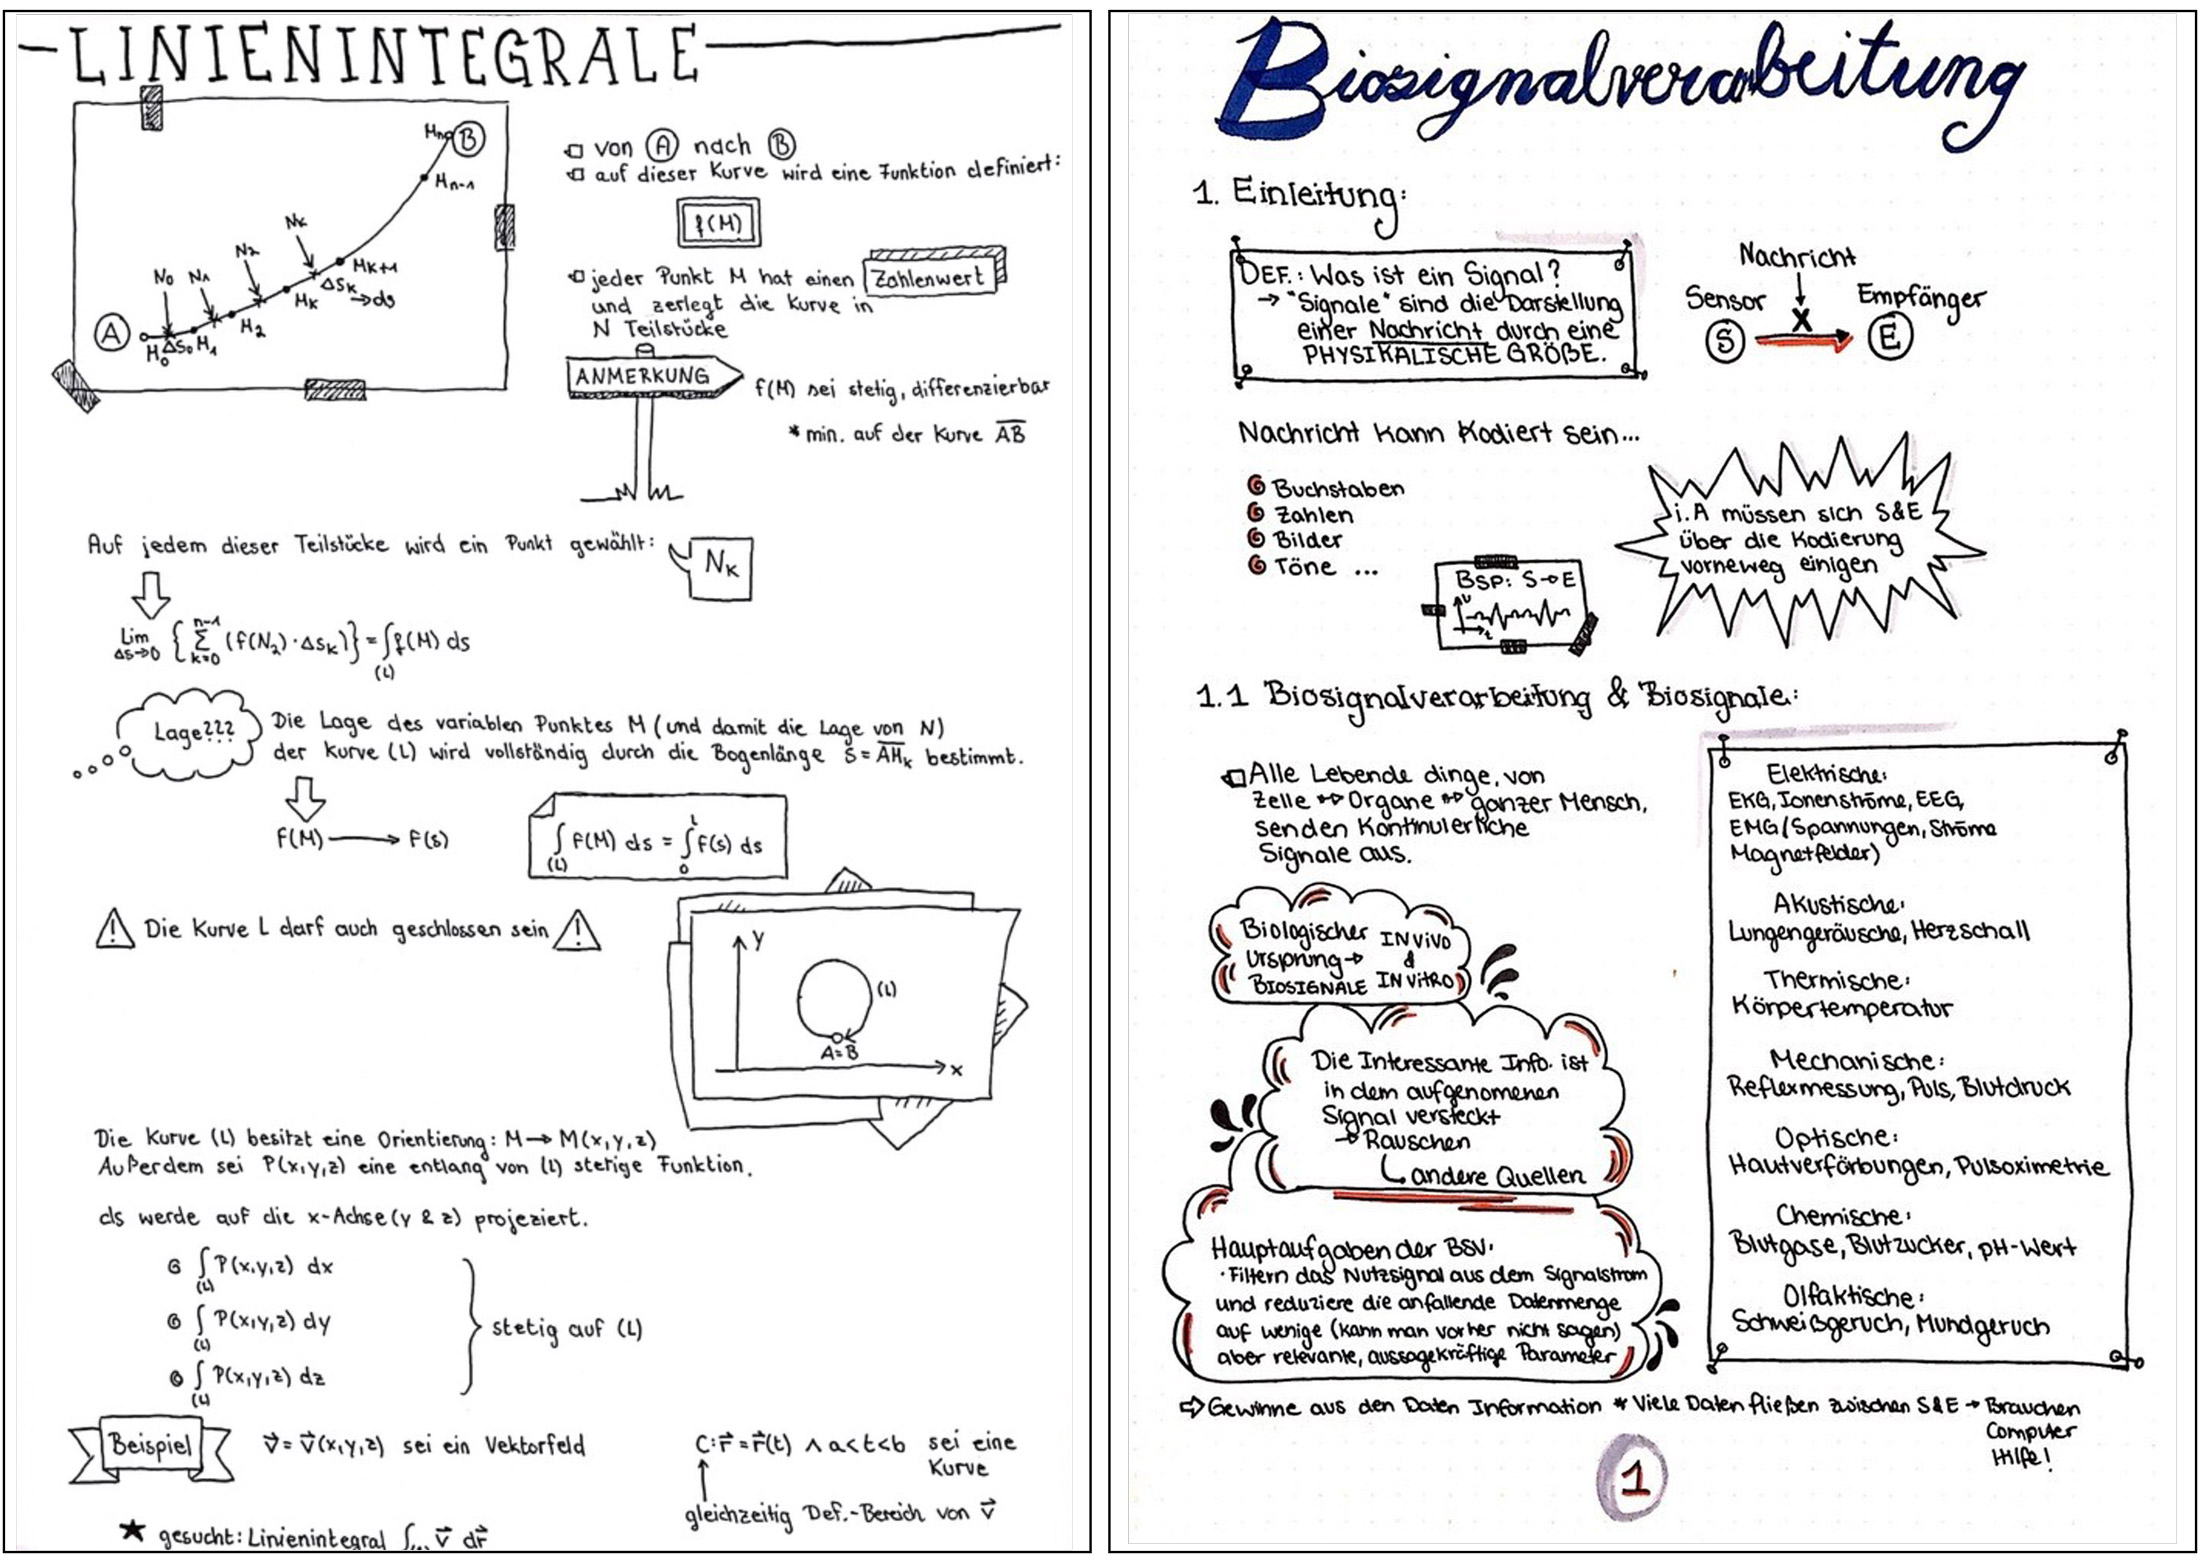 Fig. 2 Two examples of lecture notes done in a sketchnote style.